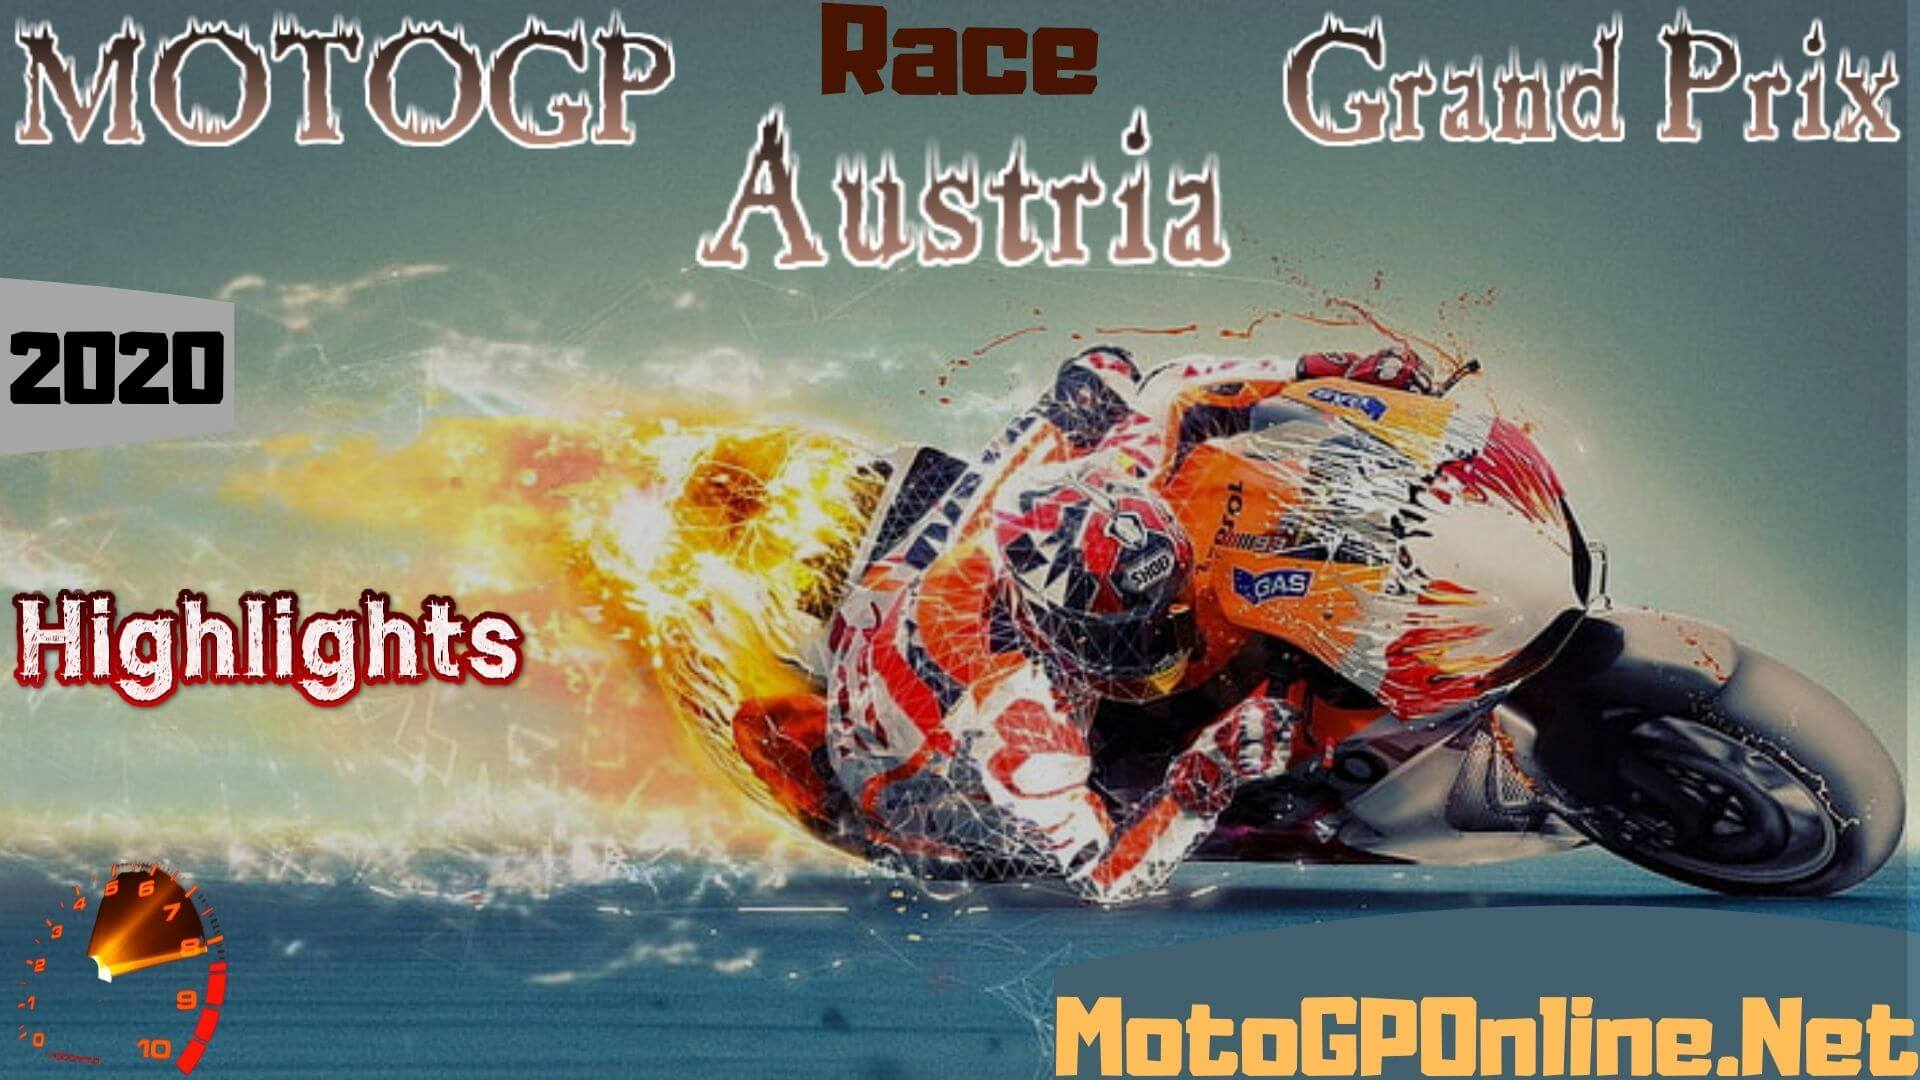 MOTOGP Austria Grand Prix Highlights 2020 Race